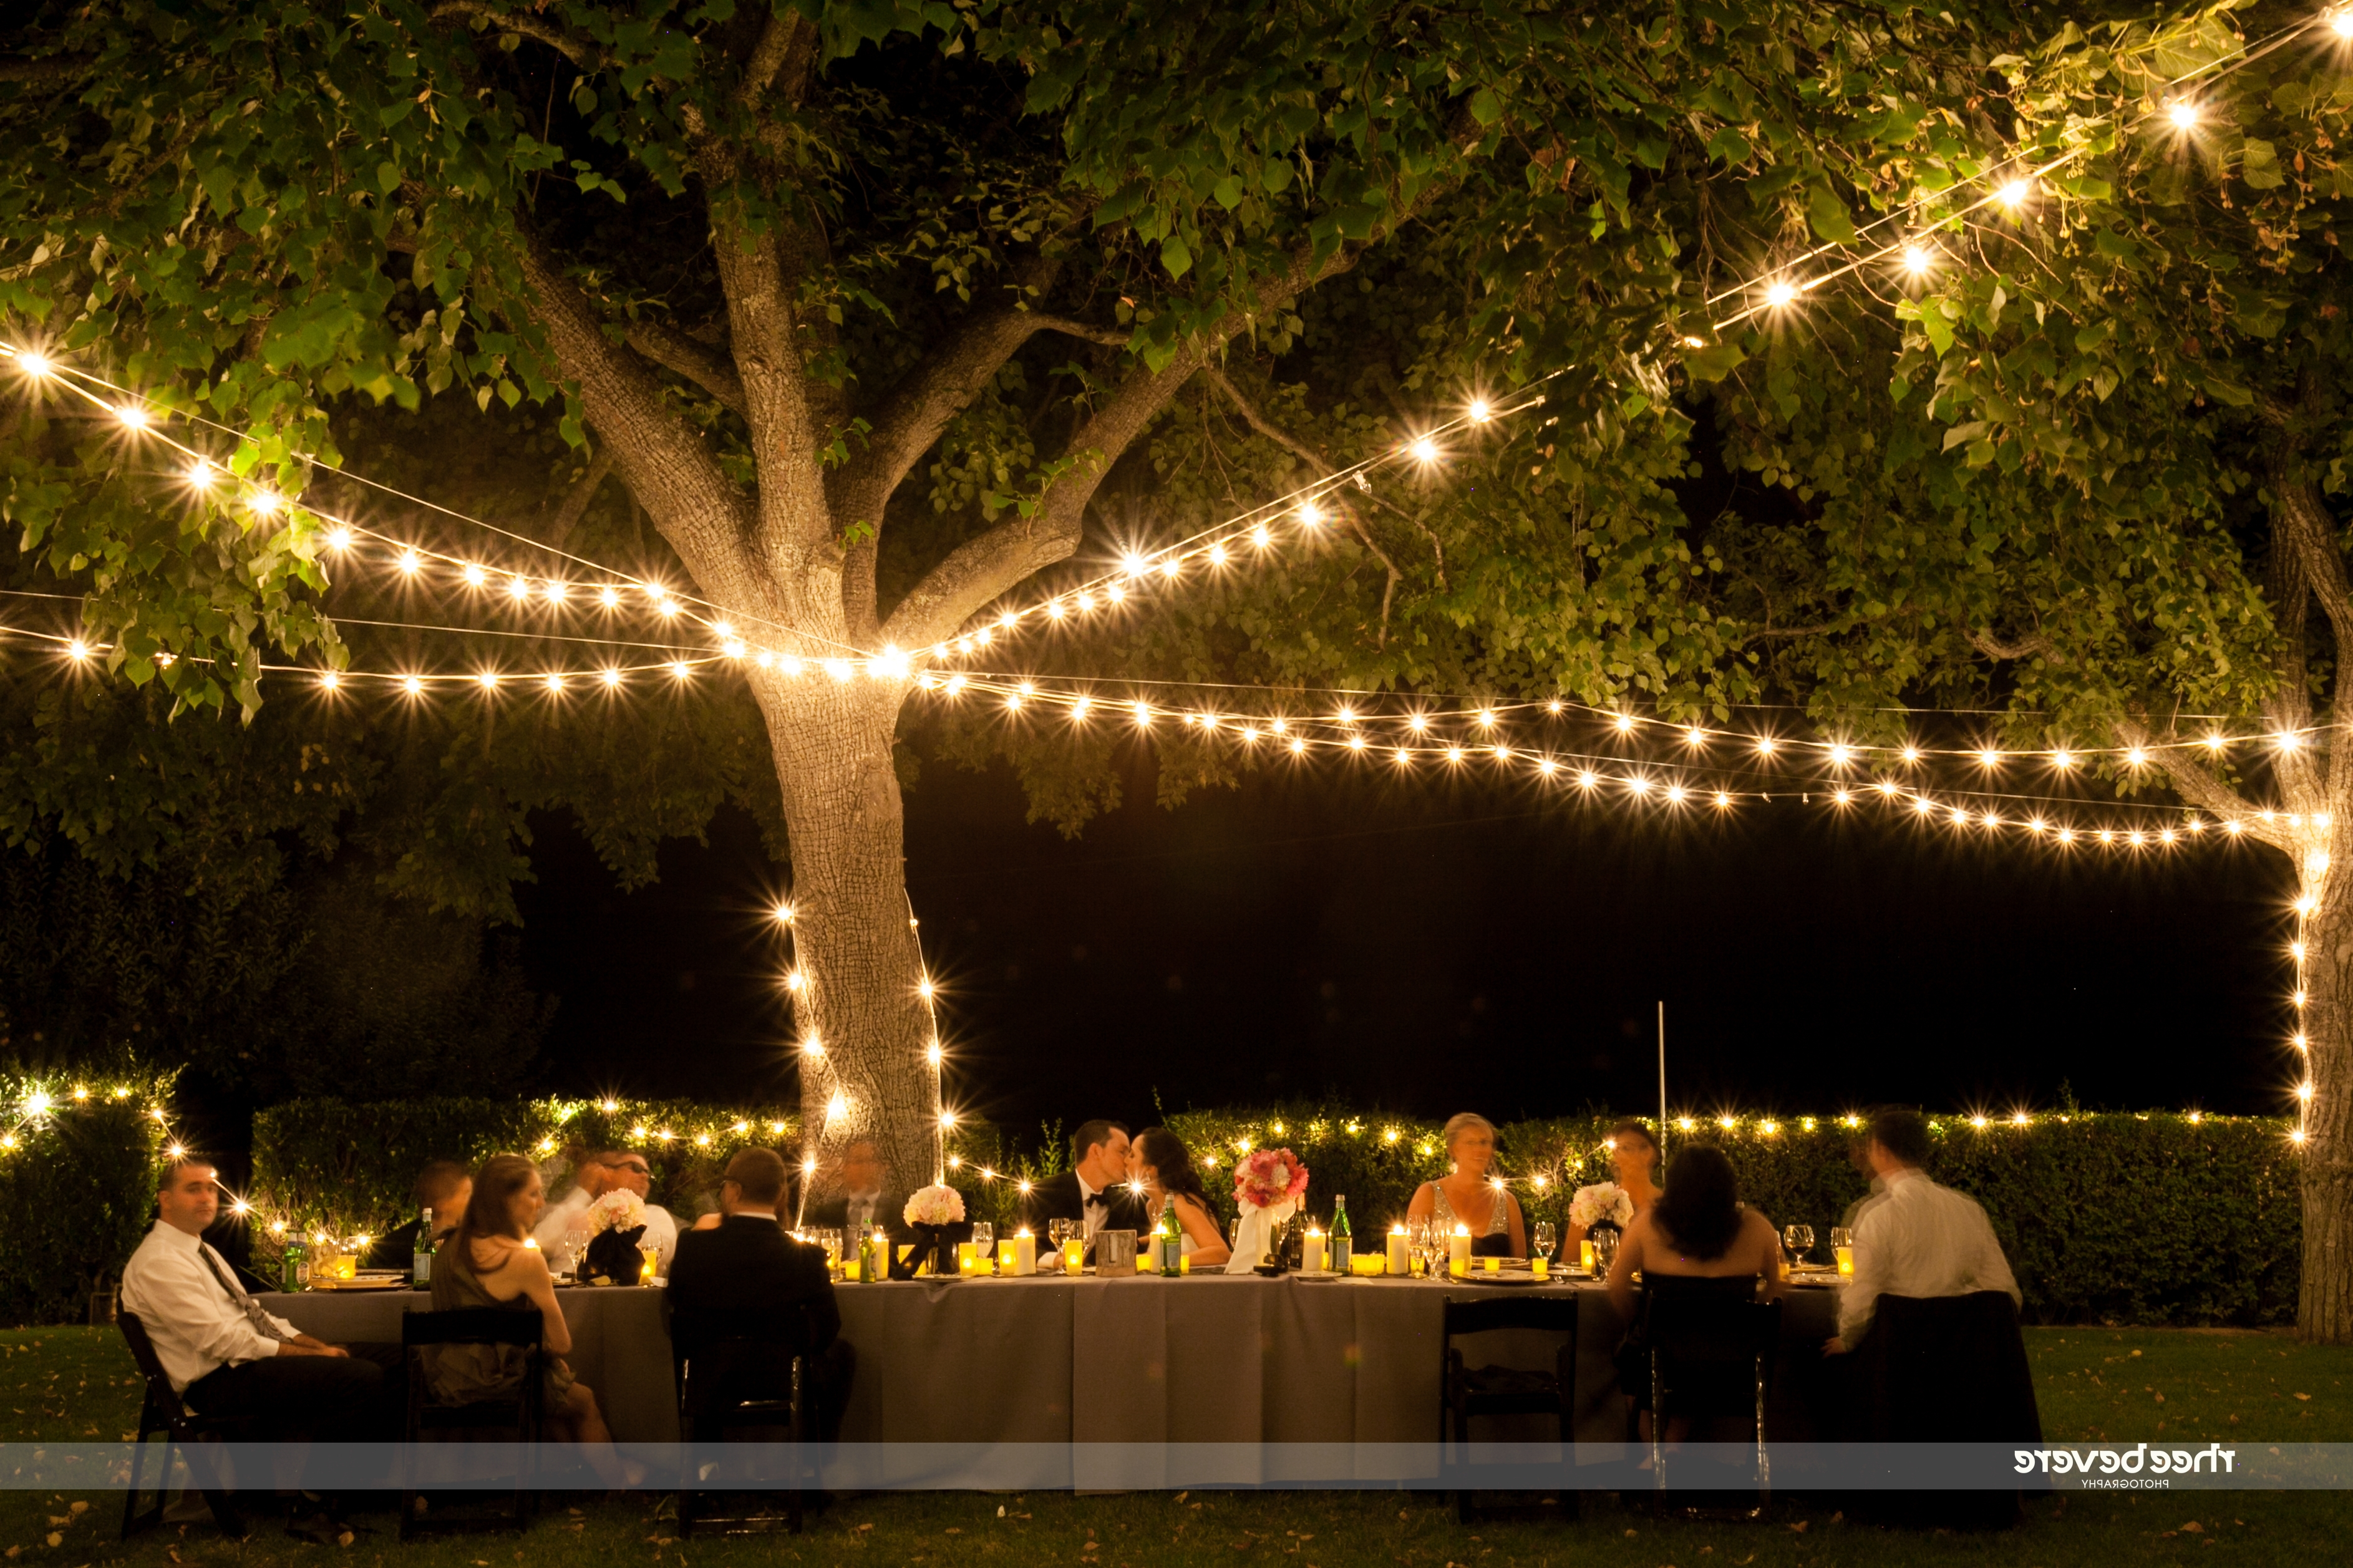 2018 Outdoor Lanterns For Parties In Outdoor Party Lights Ideas Light Delightful String Lanterns Black (Gallery 1 of 20)